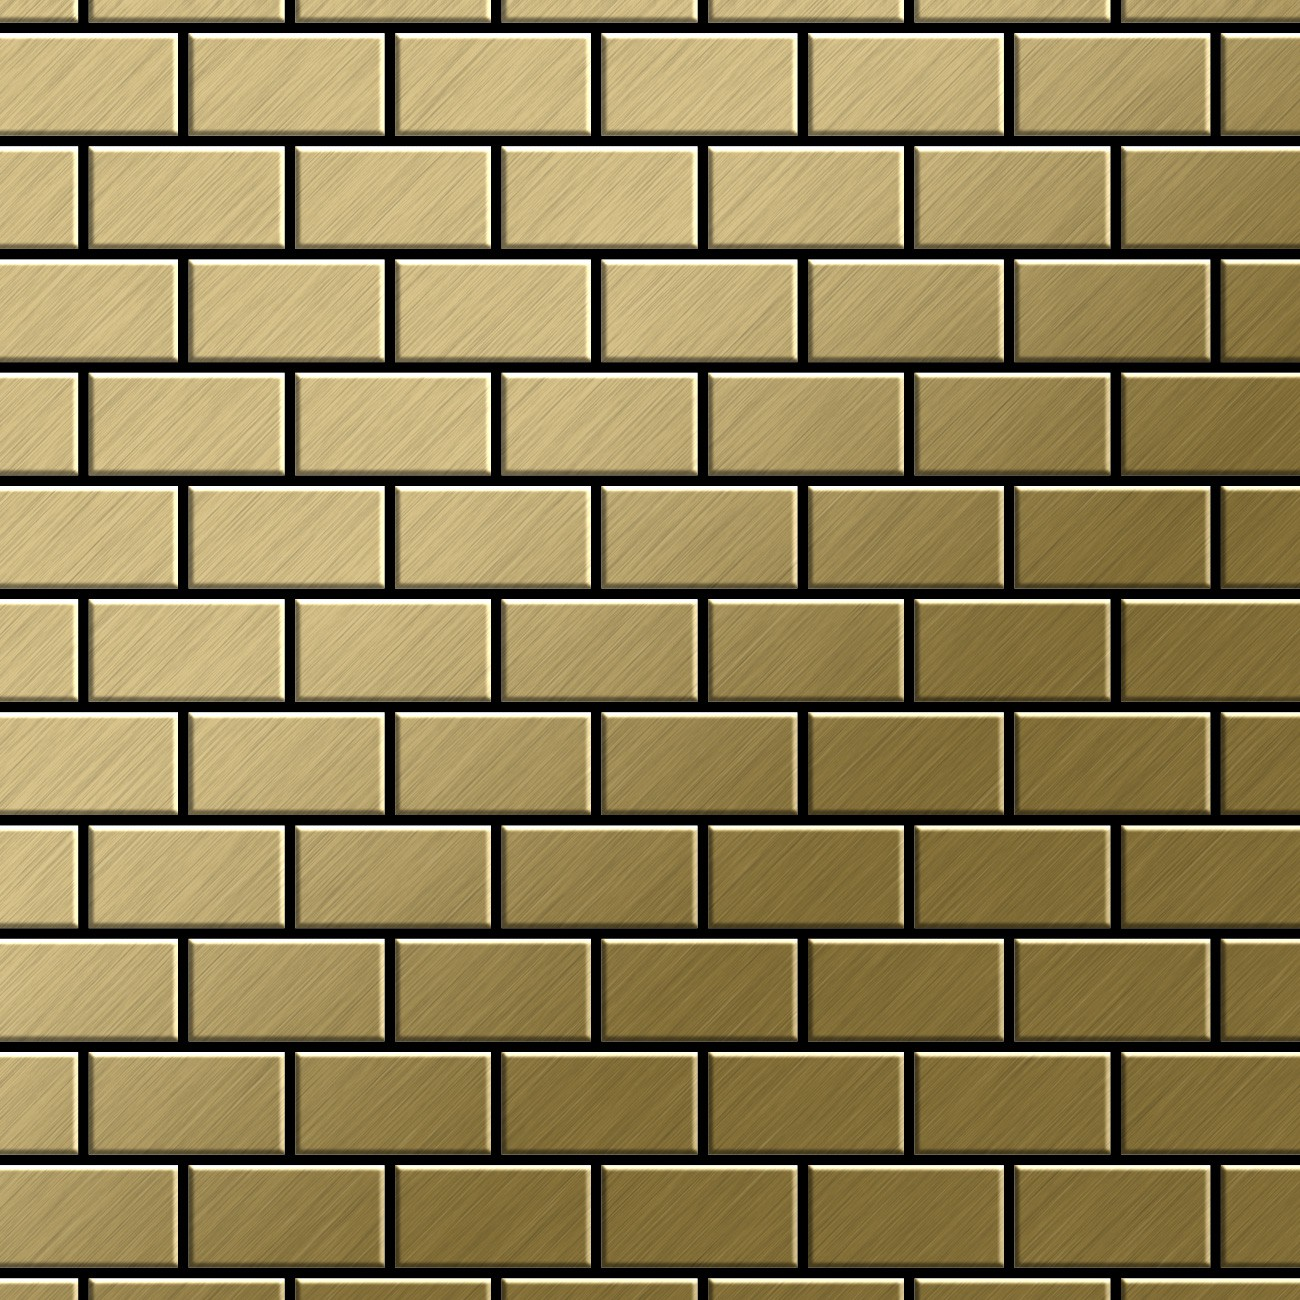 Mosaik Fliese Massiv Metall Titan Geburstet In Gold 1 6mm Stark